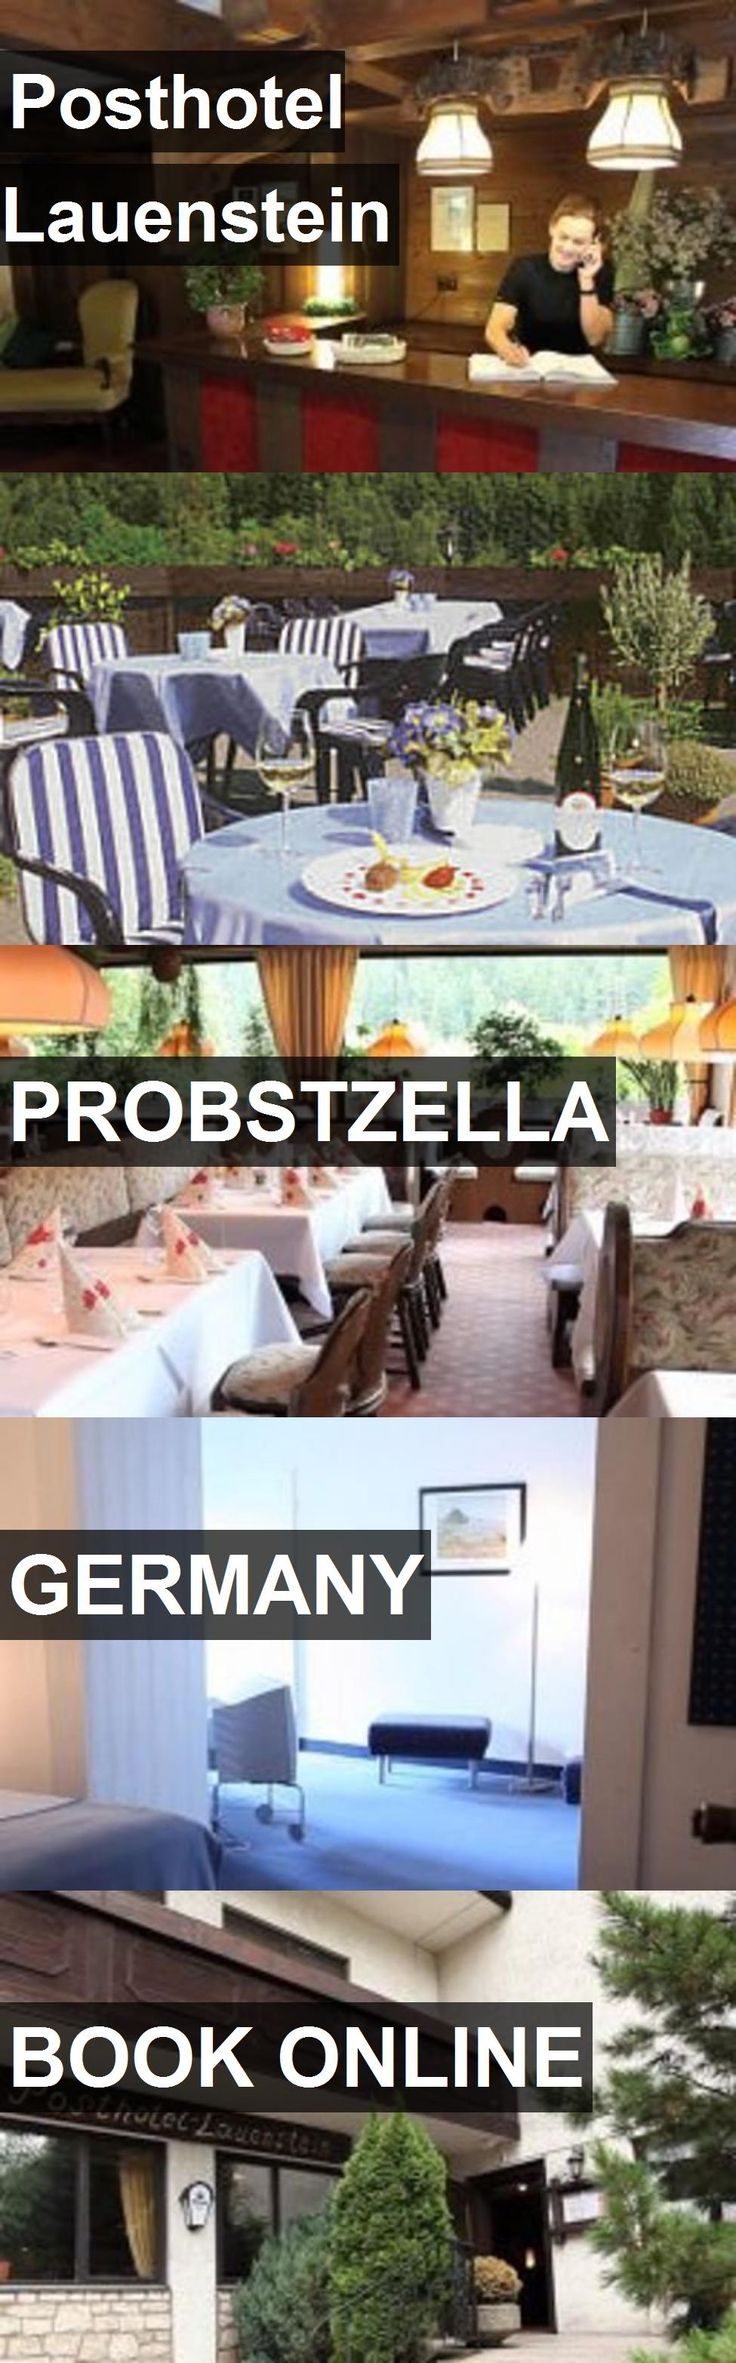 Posthotel Lauenstein in Probstzella, Germany. For more information, photos, reviews and best prices please follow the link. #Germany #Probstzella #travel #vacation #hotel